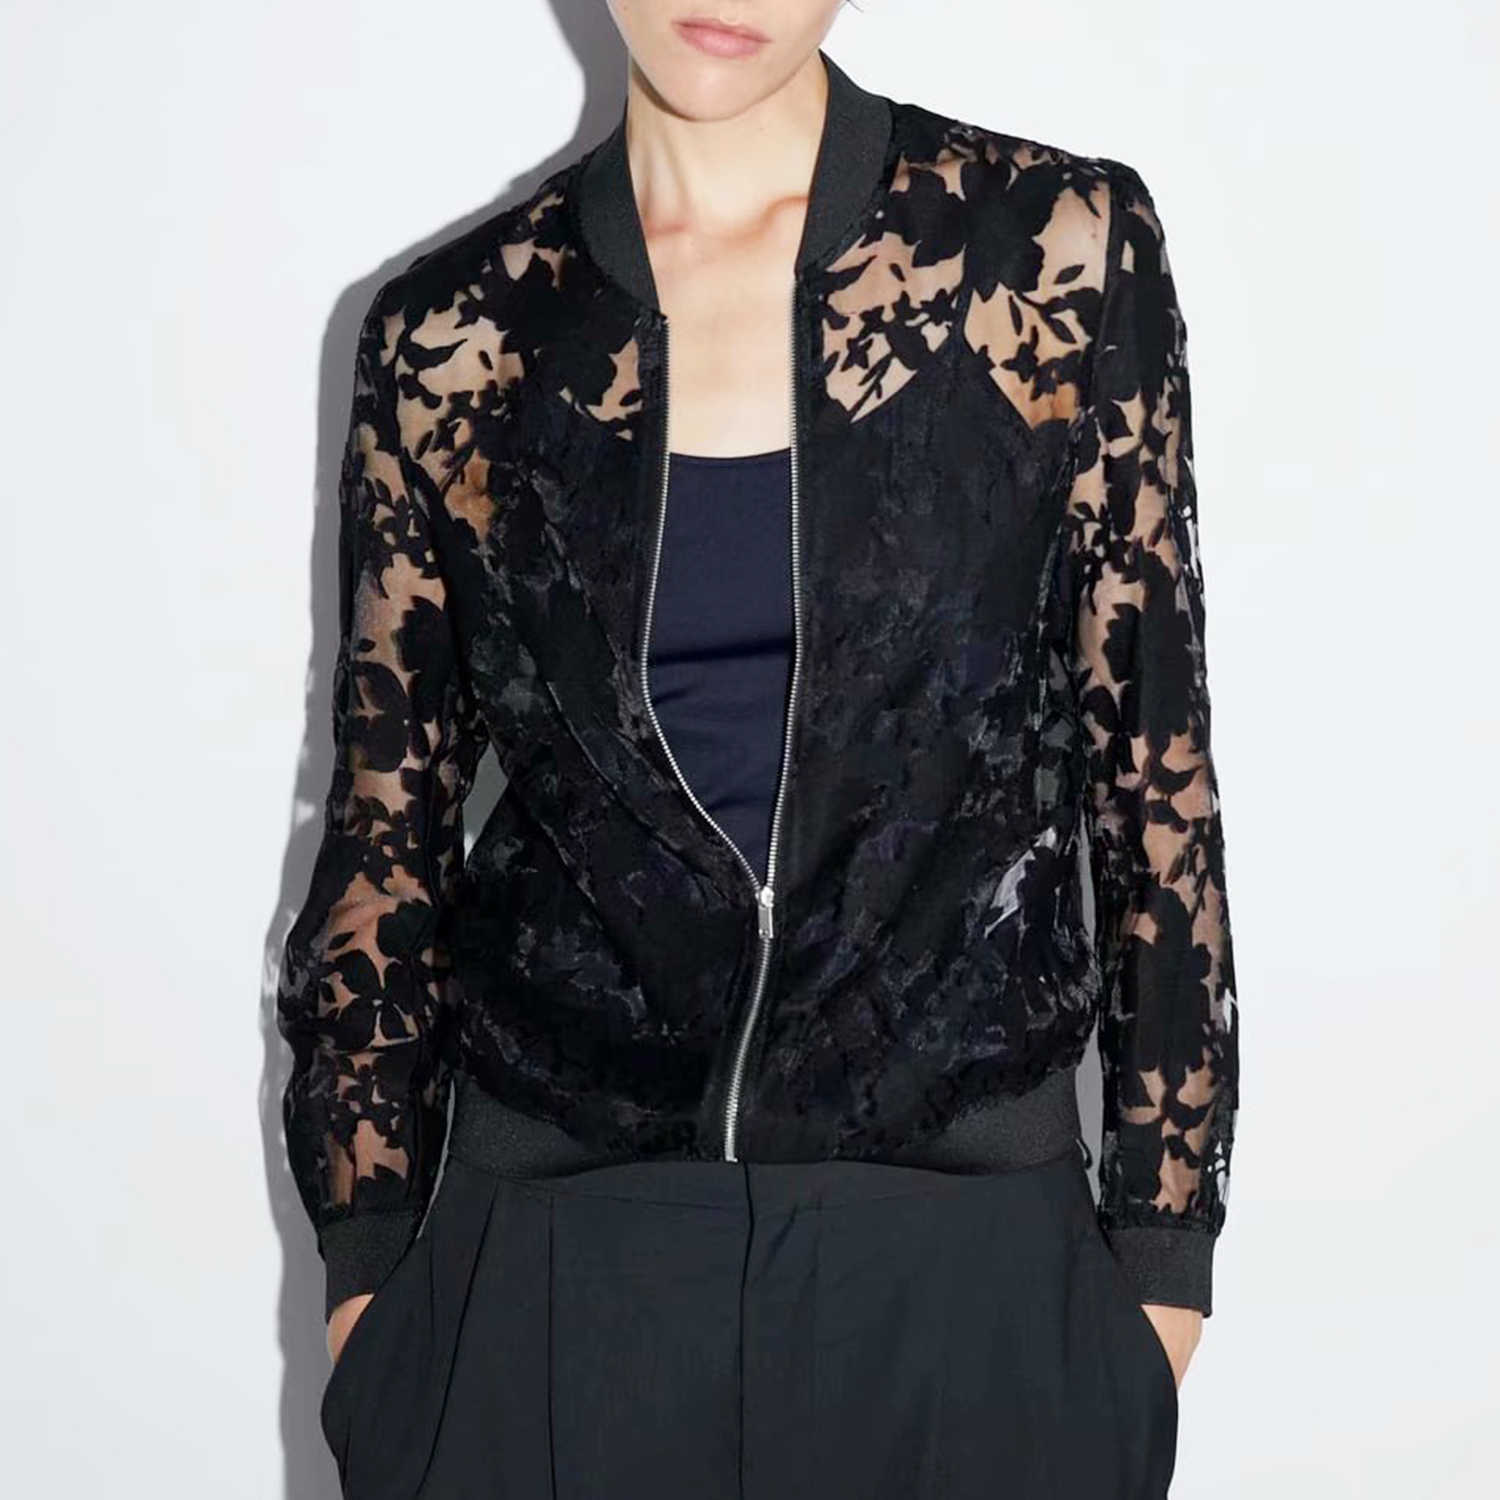 Autumn Floral pattern lace Jacket coat women Solid Black See through fabric Zipper placket Chic lady Casual jacket femme tops